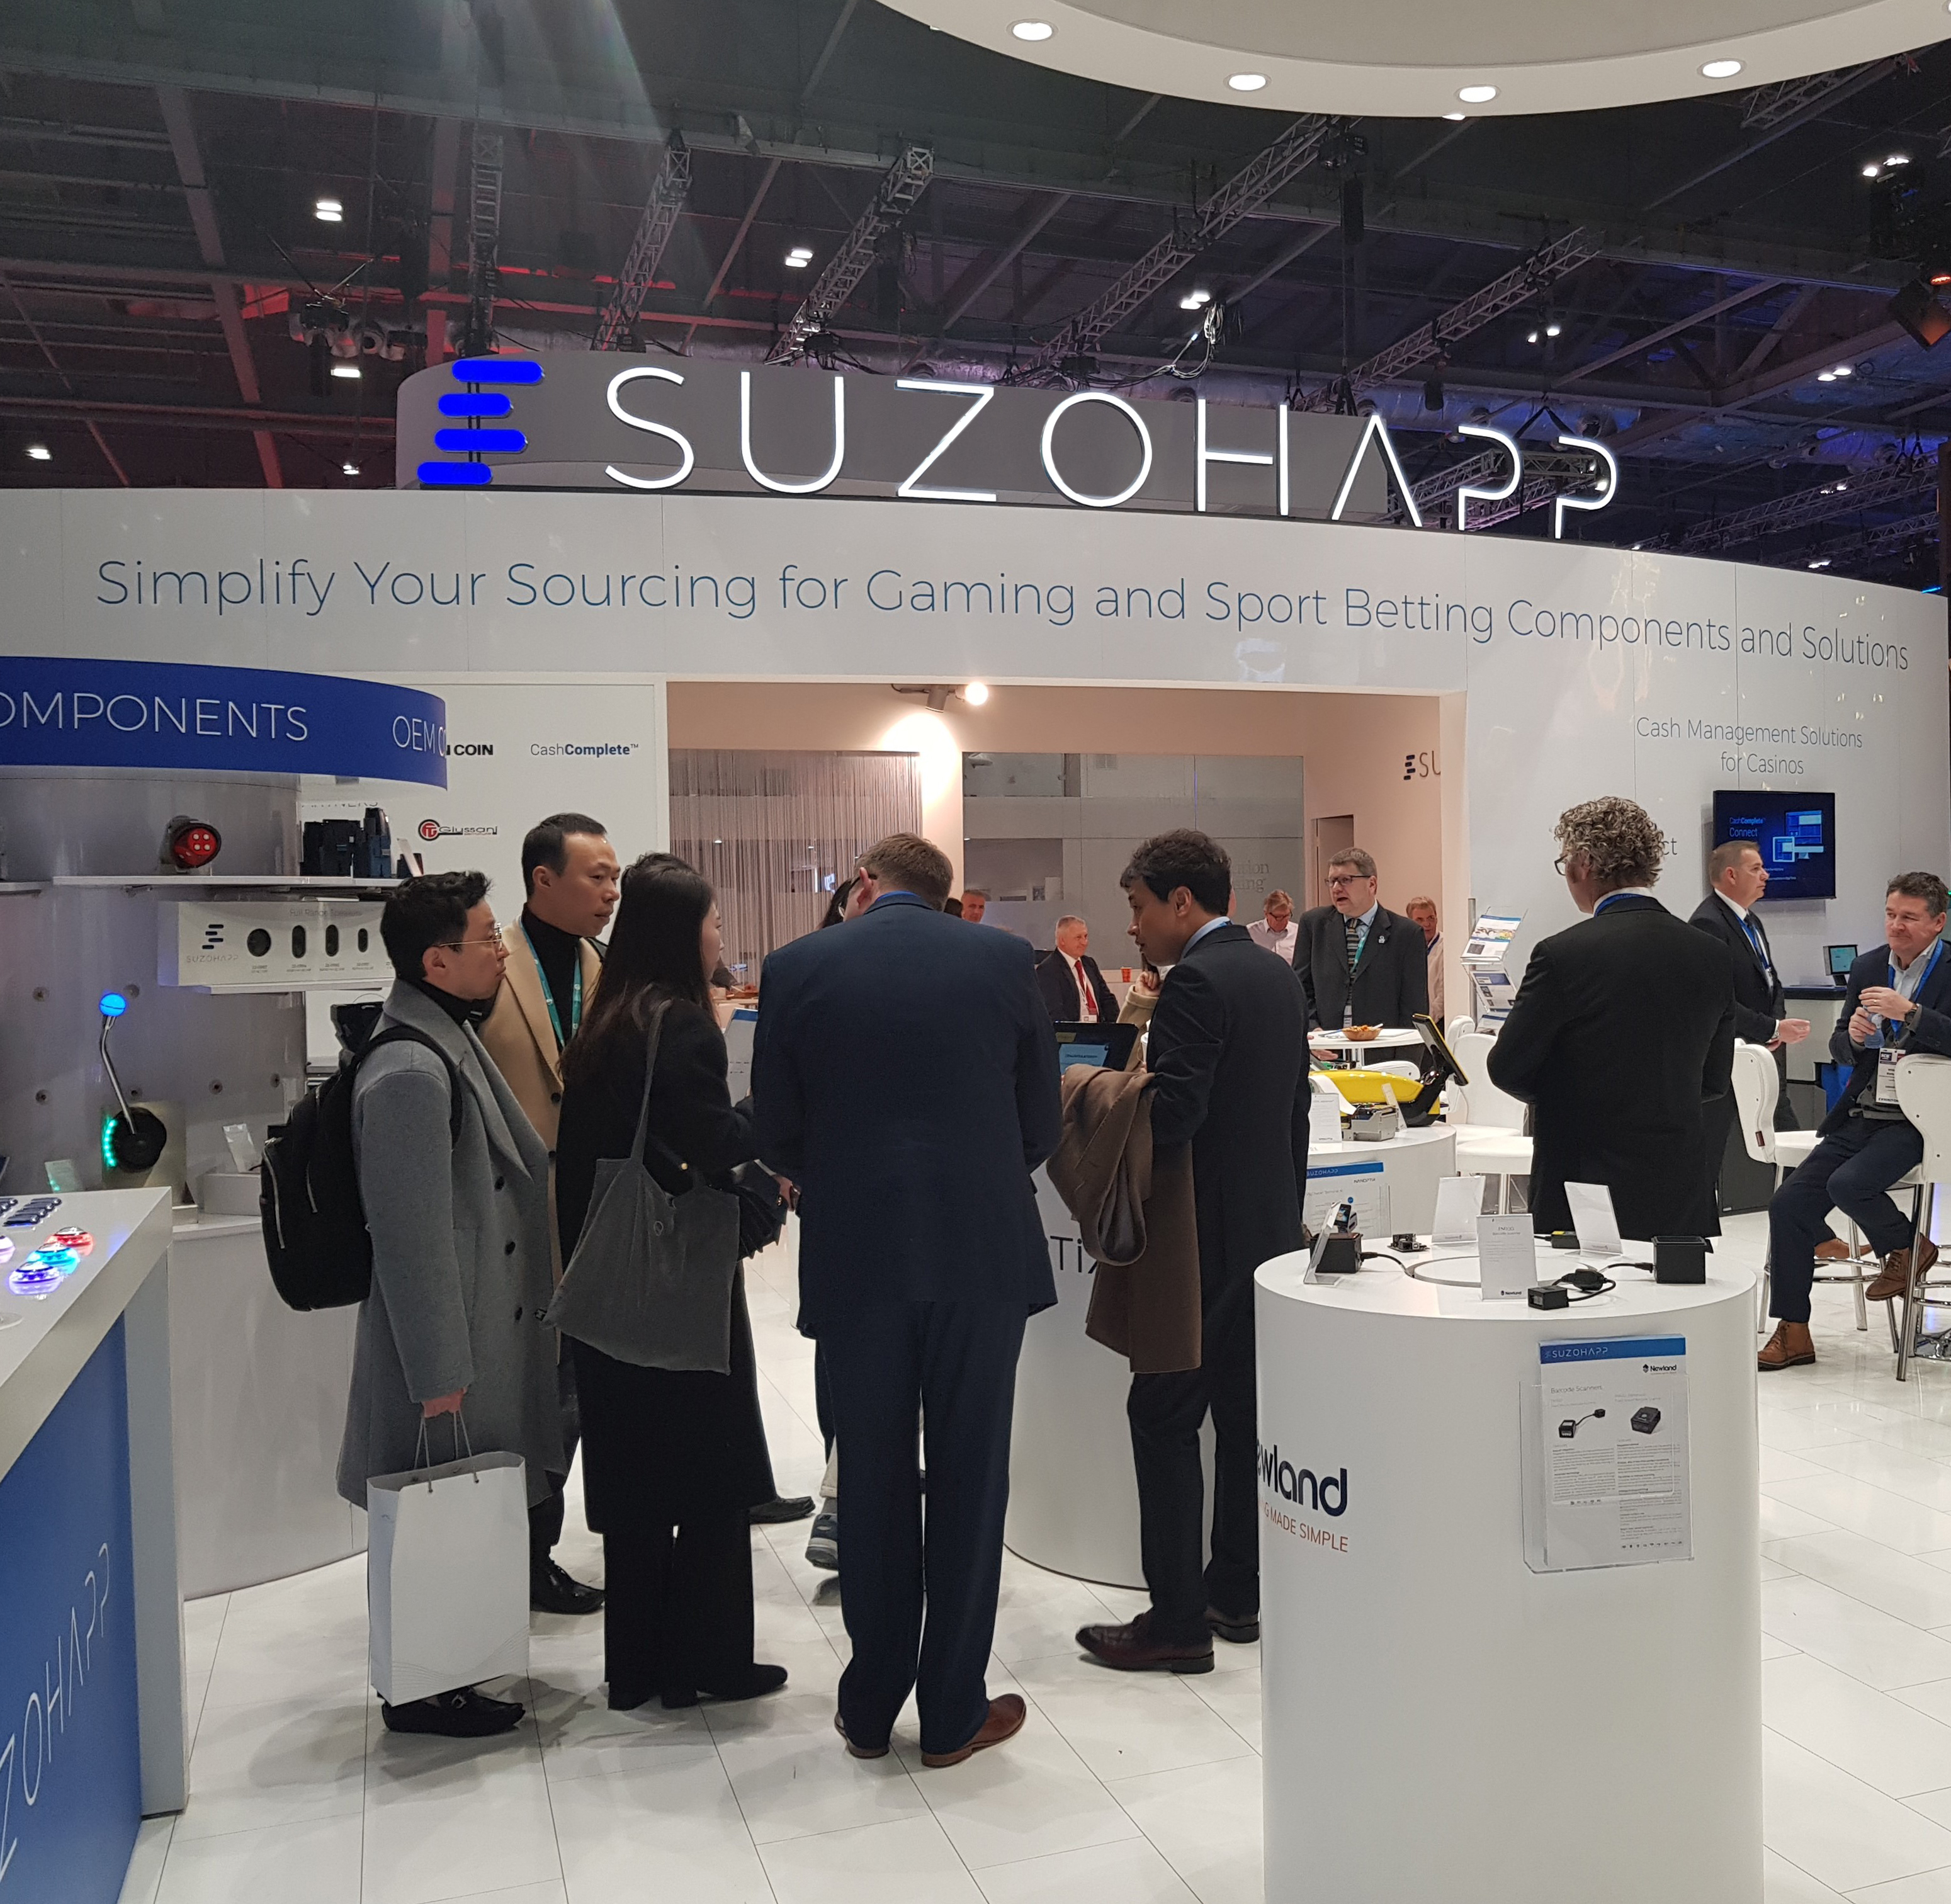 SuzoHapp - the most complete range of components